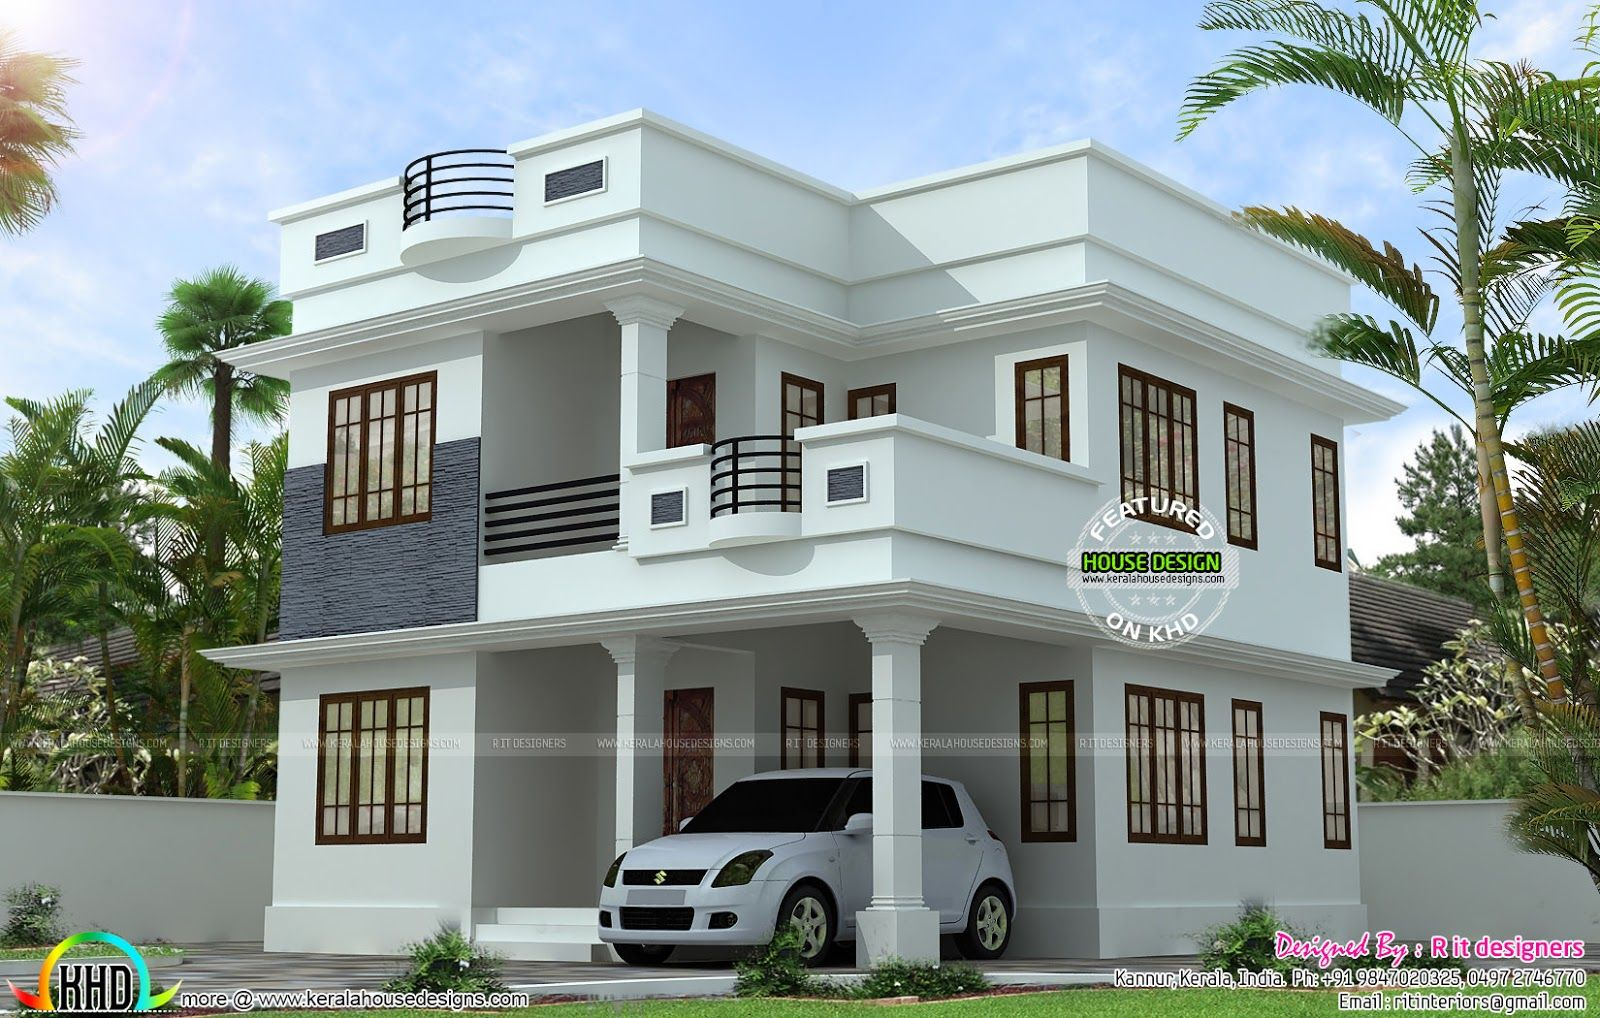 Neat and simple small house plan kerala home design floor plans also rh pinterest